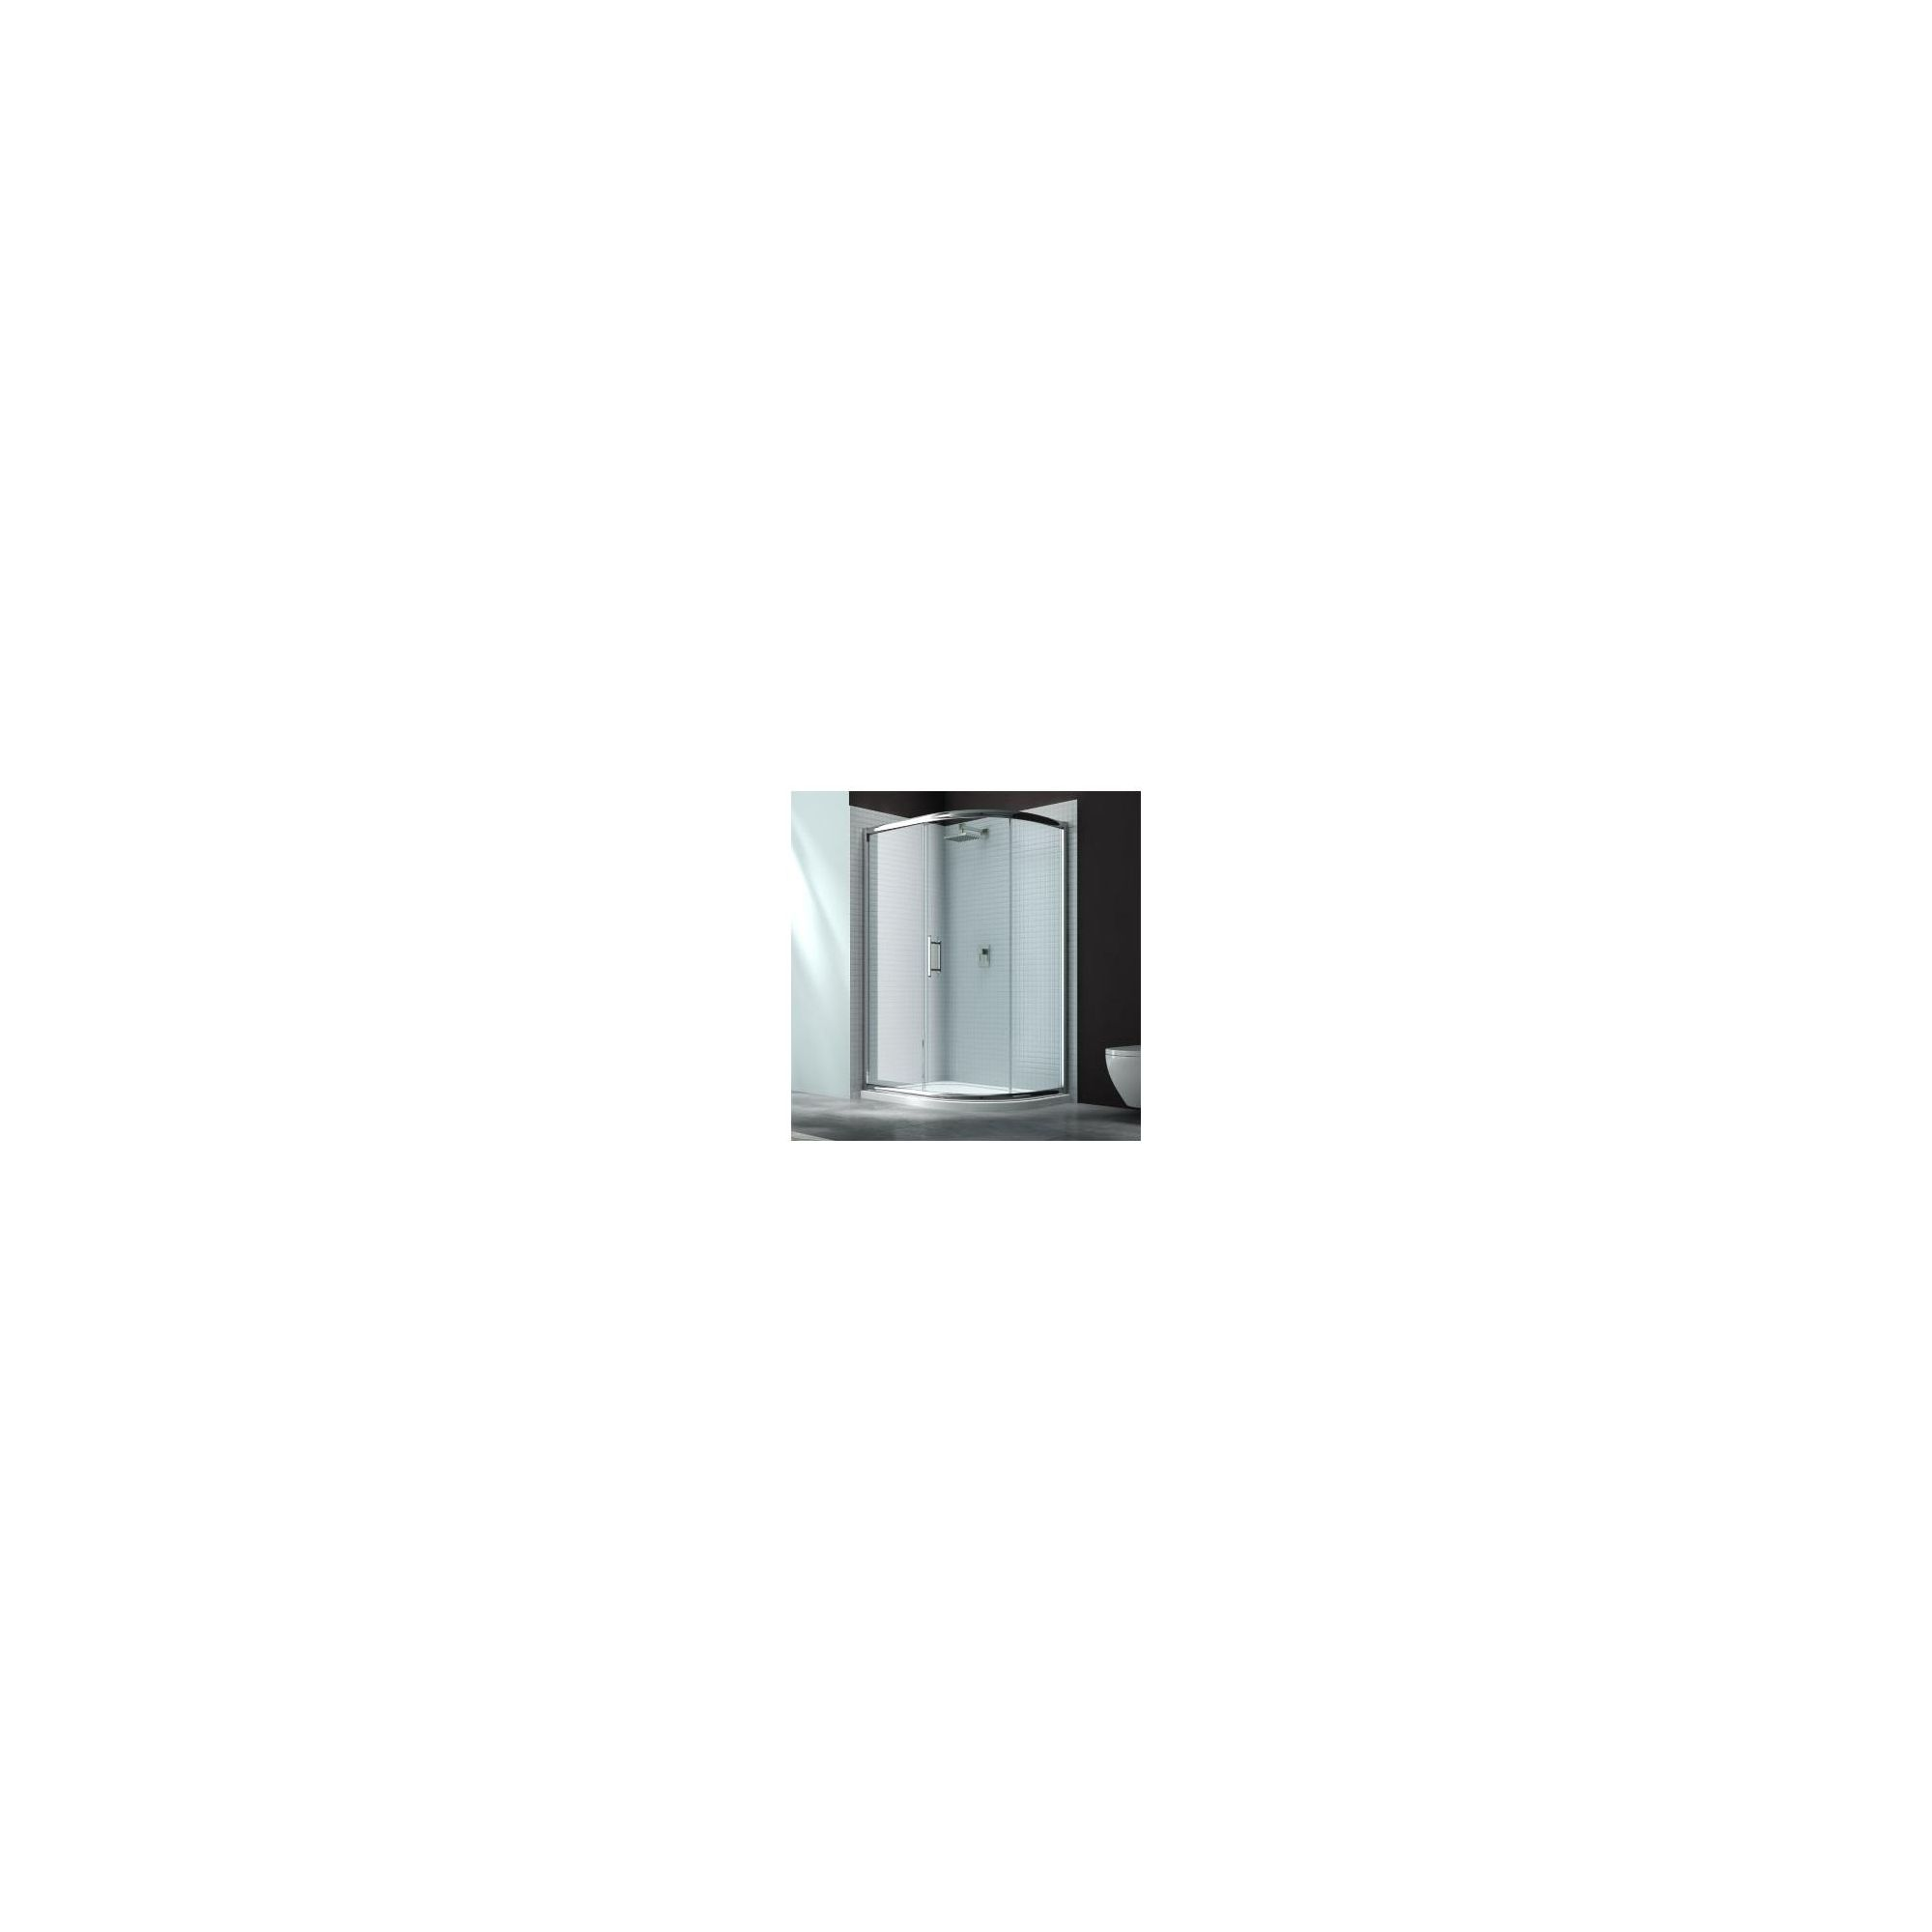 Merlyn Series 6 Single Quadrant Shower Door, 900mm x 900mm, Chrome Frame, 6mm Glass at Tesco Direct